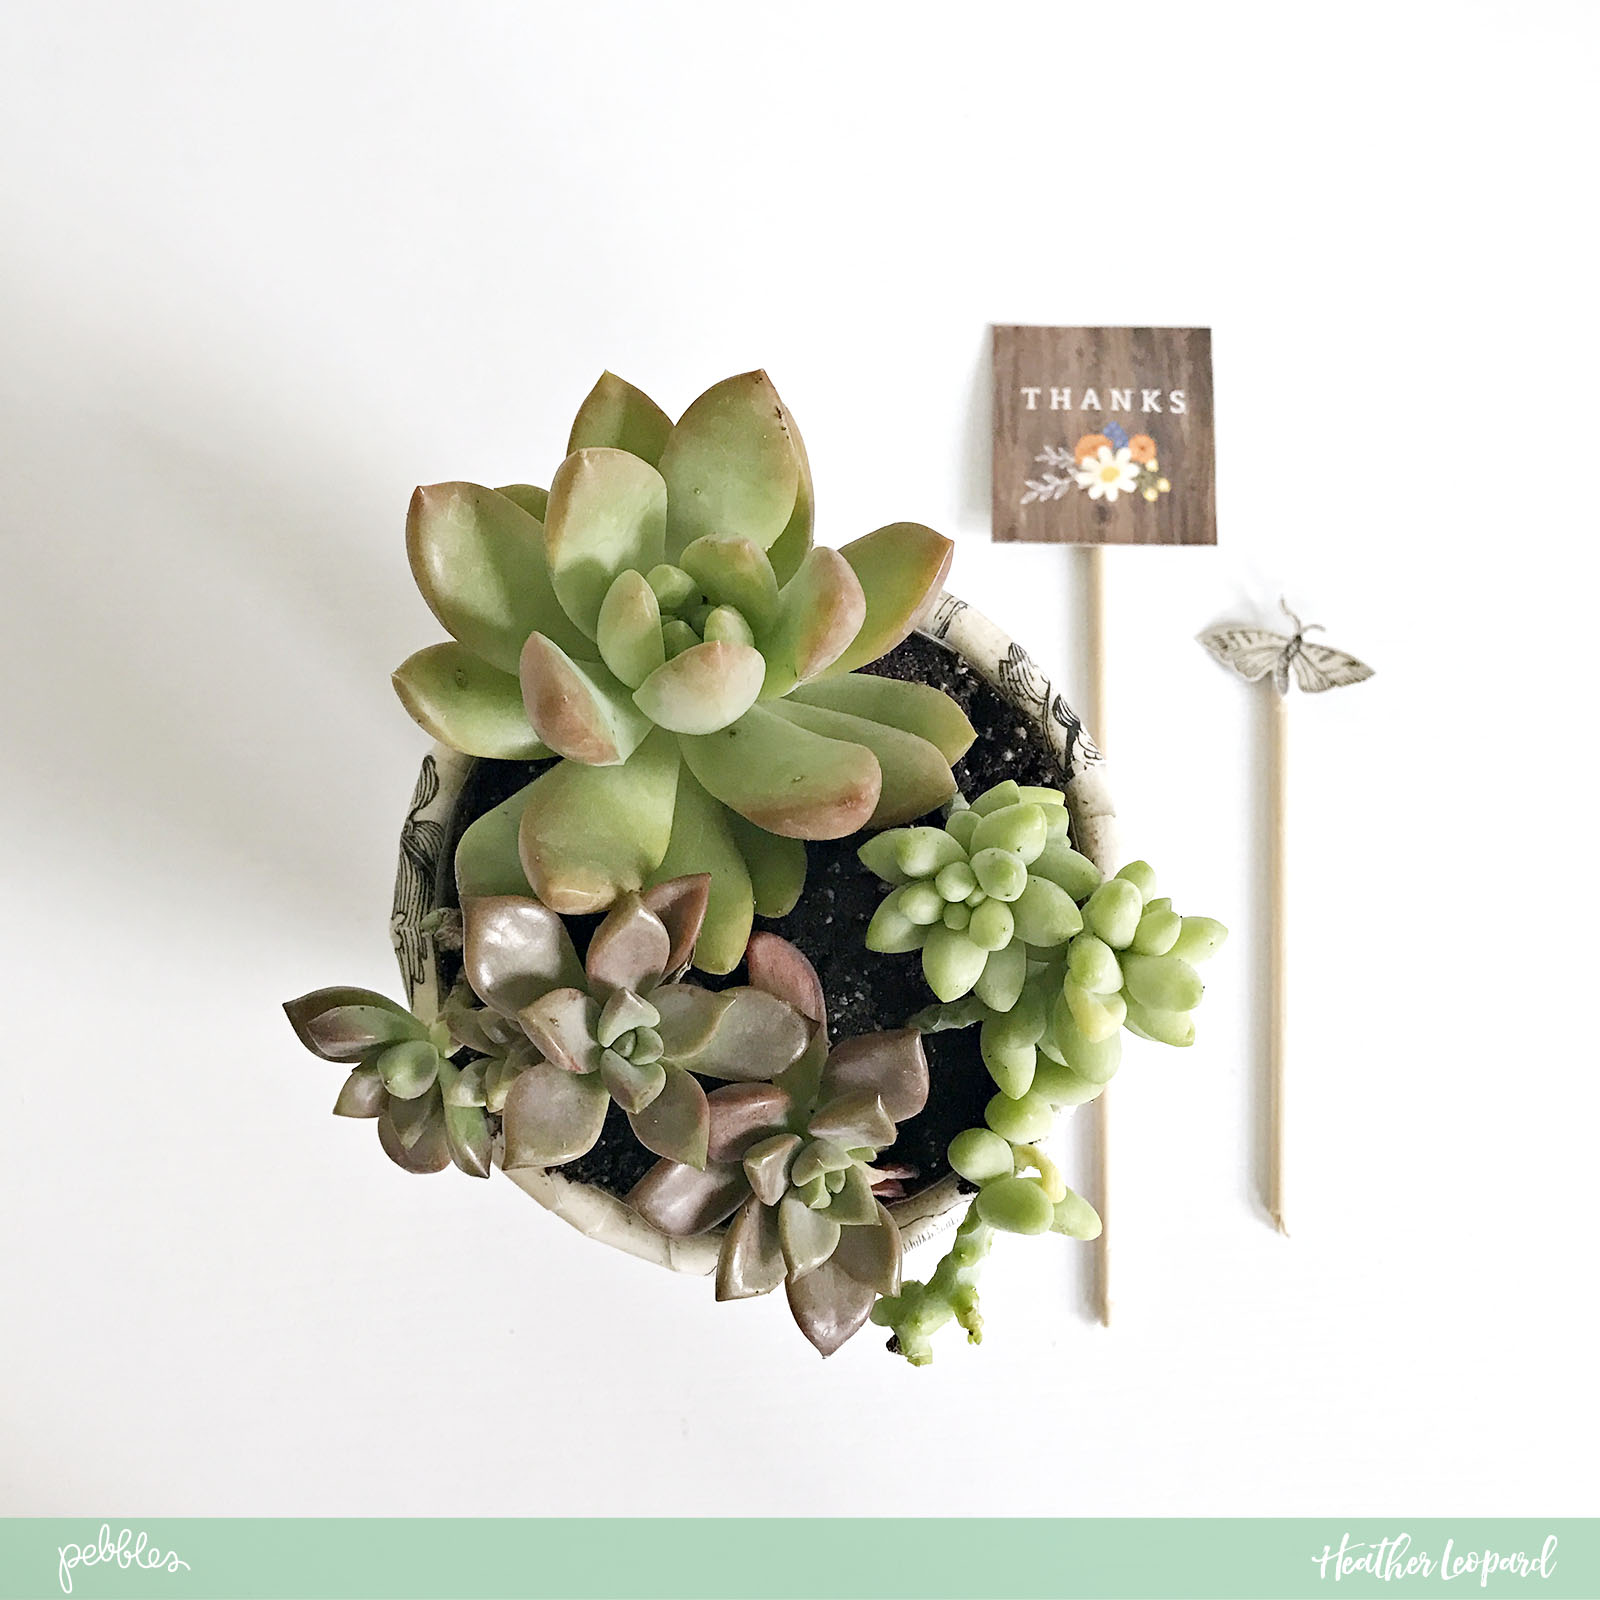 DIY Teacher Gift by @heatherleopard using the @PebblesInc #jenhadfield #simplelife collection #teachergift #DIY #decoupagepot #madewithpebbles